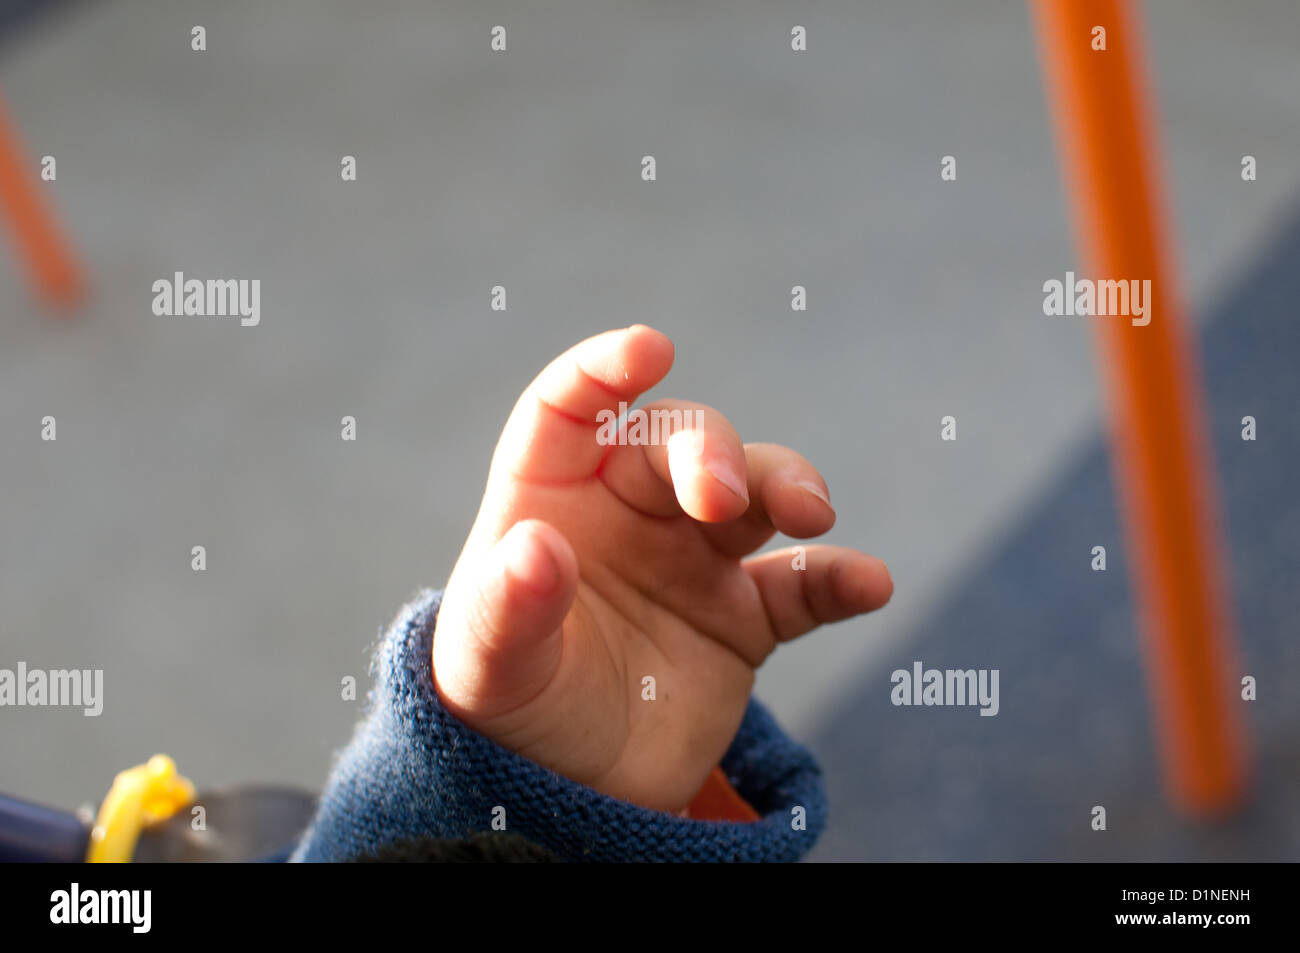 Bent Fingers Stock Photos & Bent Fingers Stock Images - Alamy